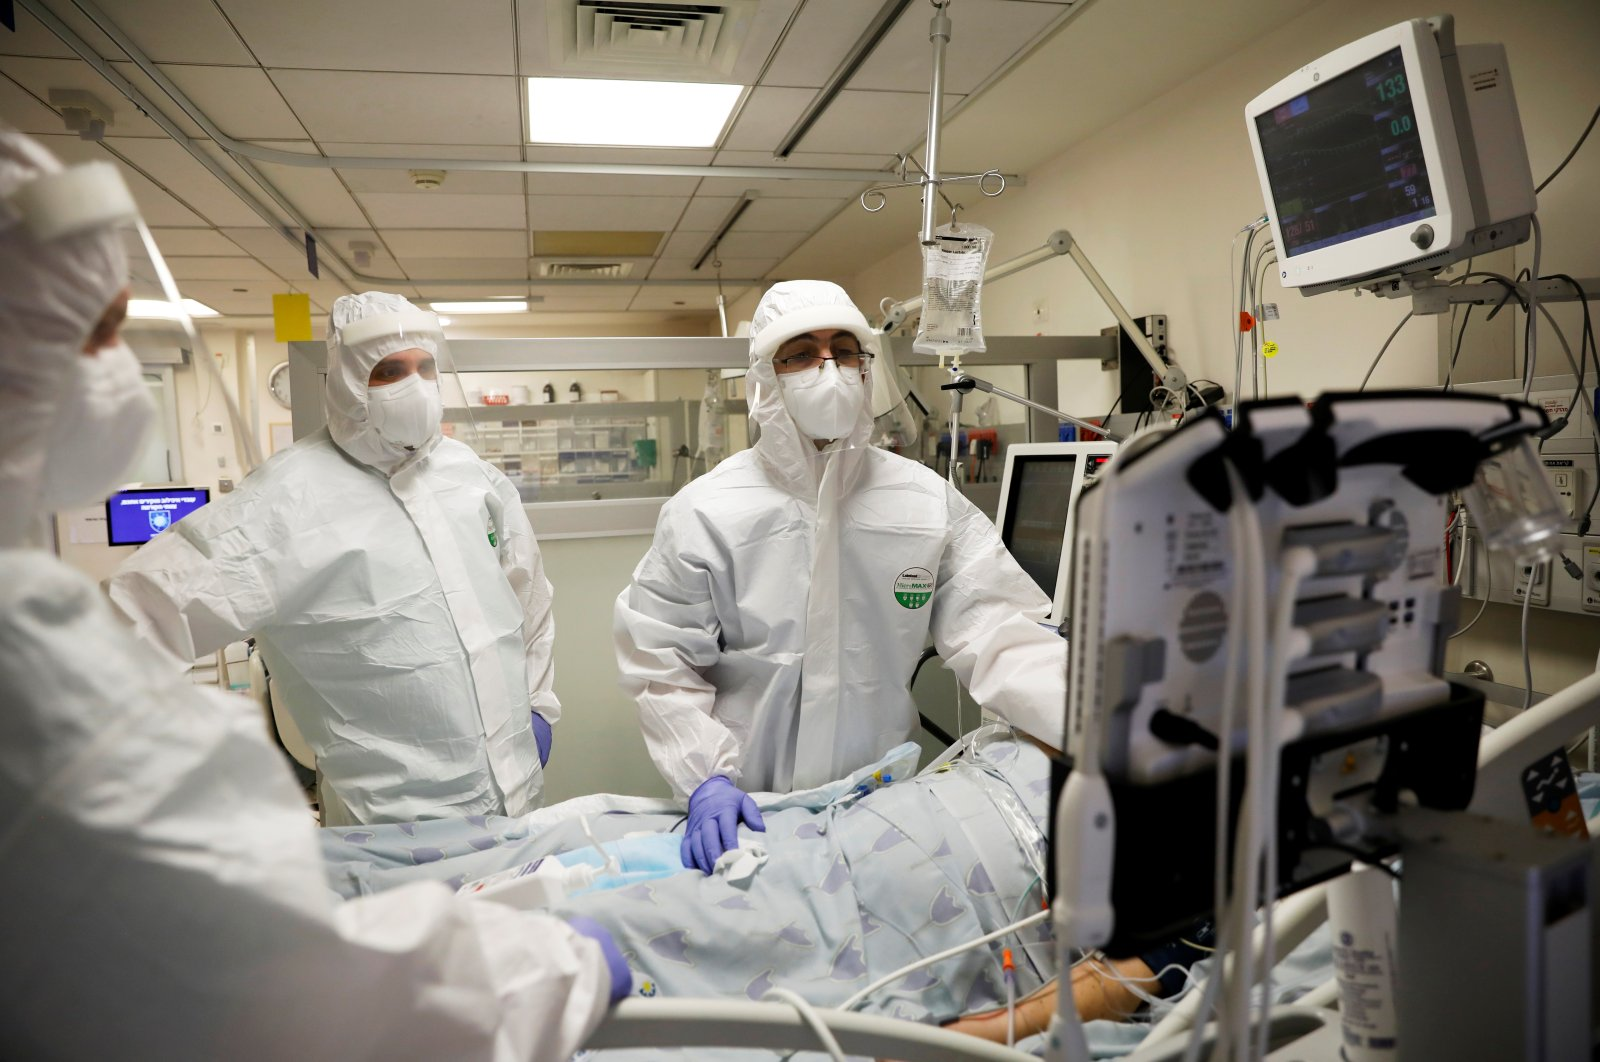 Hospital staff provides medical care for patients at a coronavirus ward amid a surge in new cases that has forced Israel into a second nationwide lockdown, at Tel Aviv Sourasky Medical Center (Ichilov), Tel Aviv, Israel, Sept. 21, 2020. (Reuters Photo)